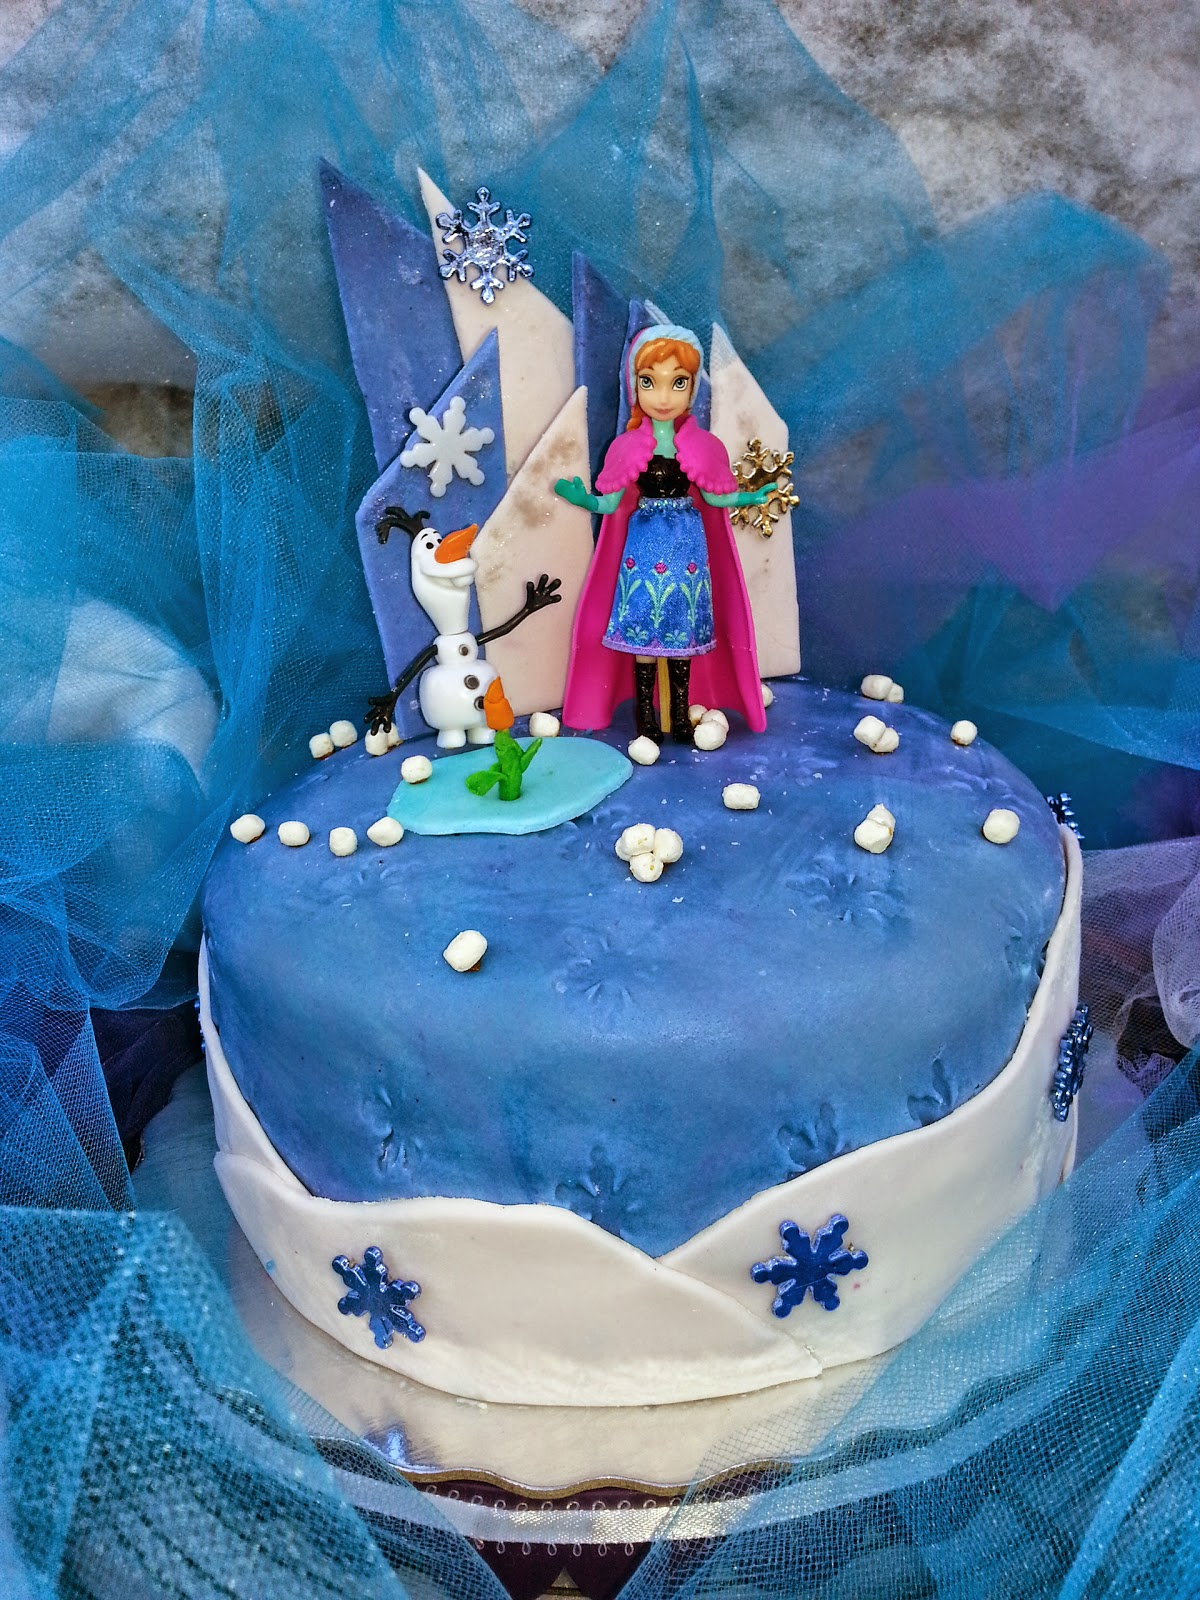 Nana 39 s theme party disney frozen anna and olaf cake - Frozen anna and olaf ...